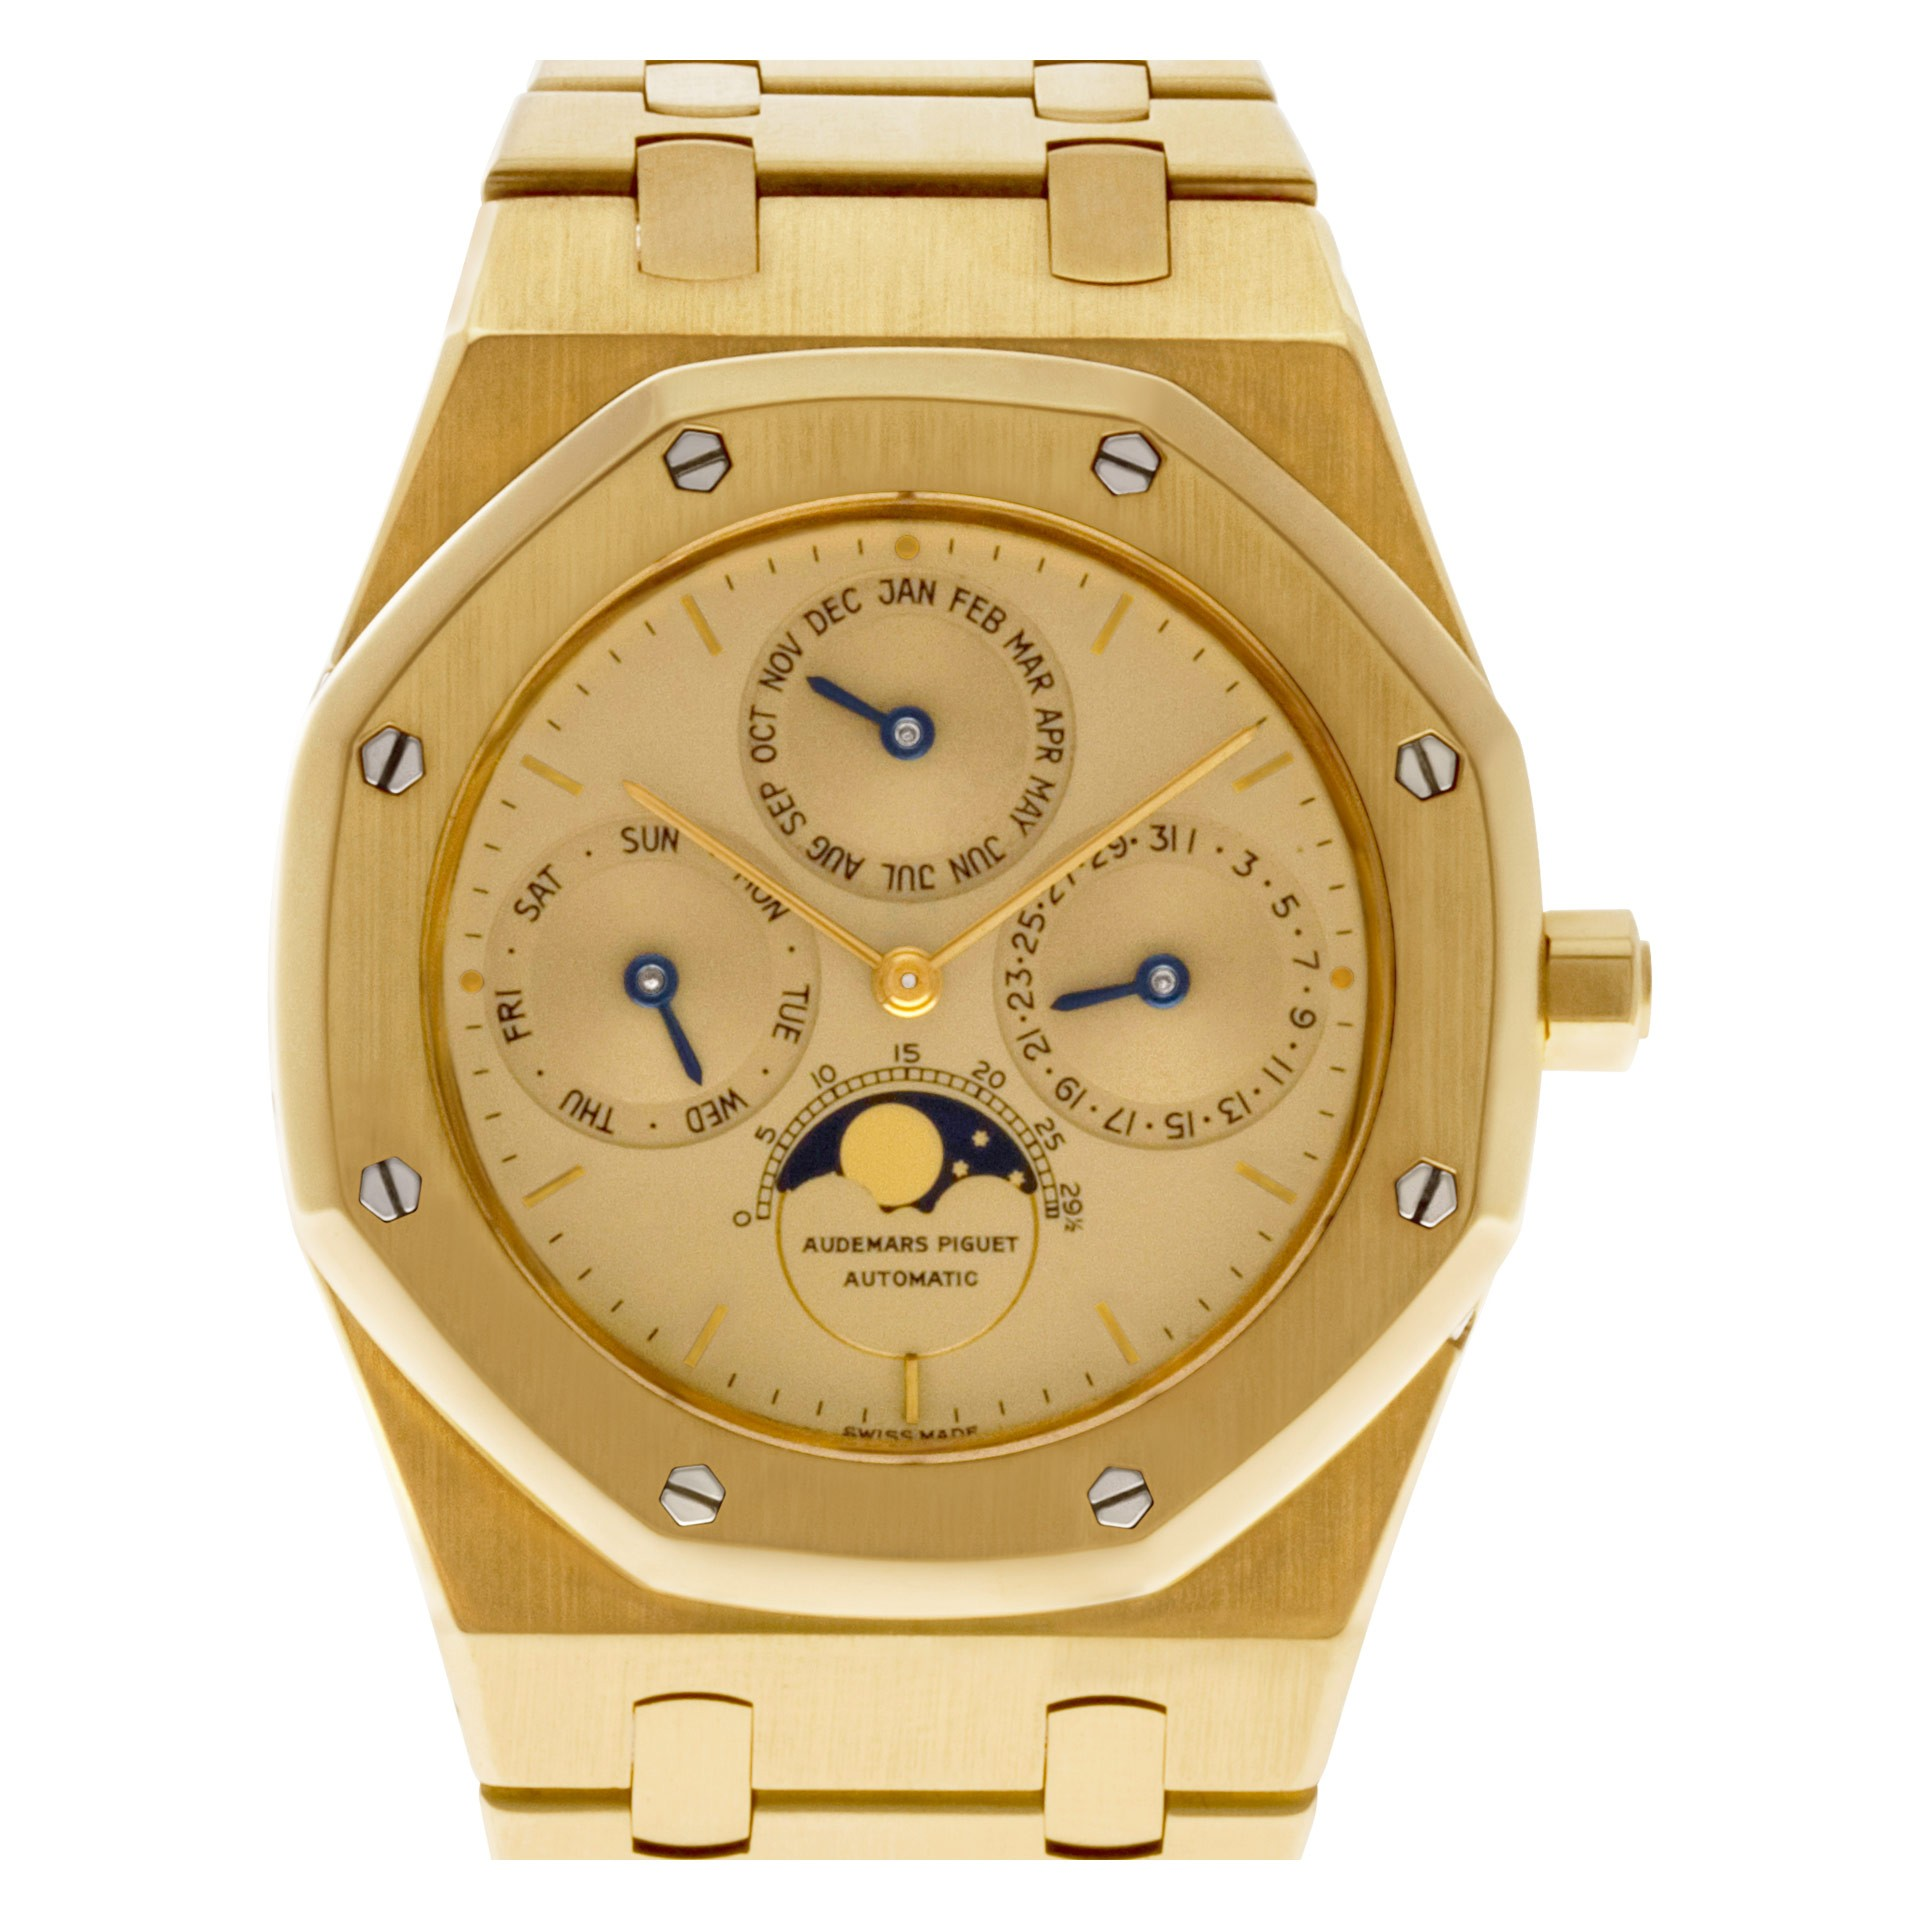 Famous Luxury Sports Watches with Integrated Bracelets: Royal Oak